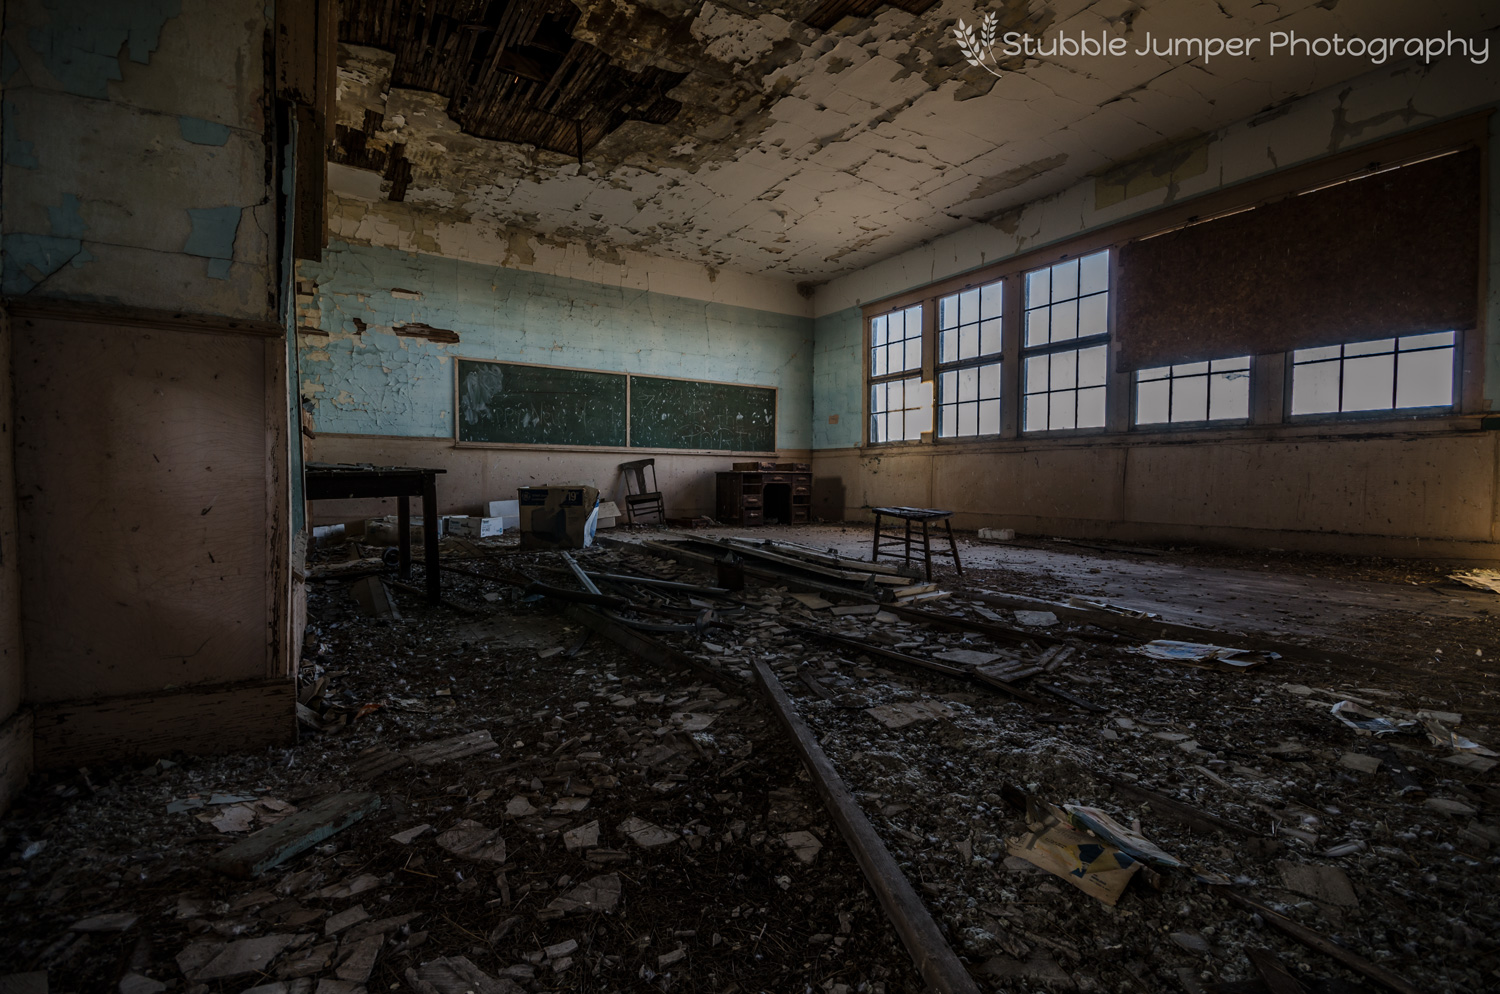 rose_lynn_school_interior_web.jpg